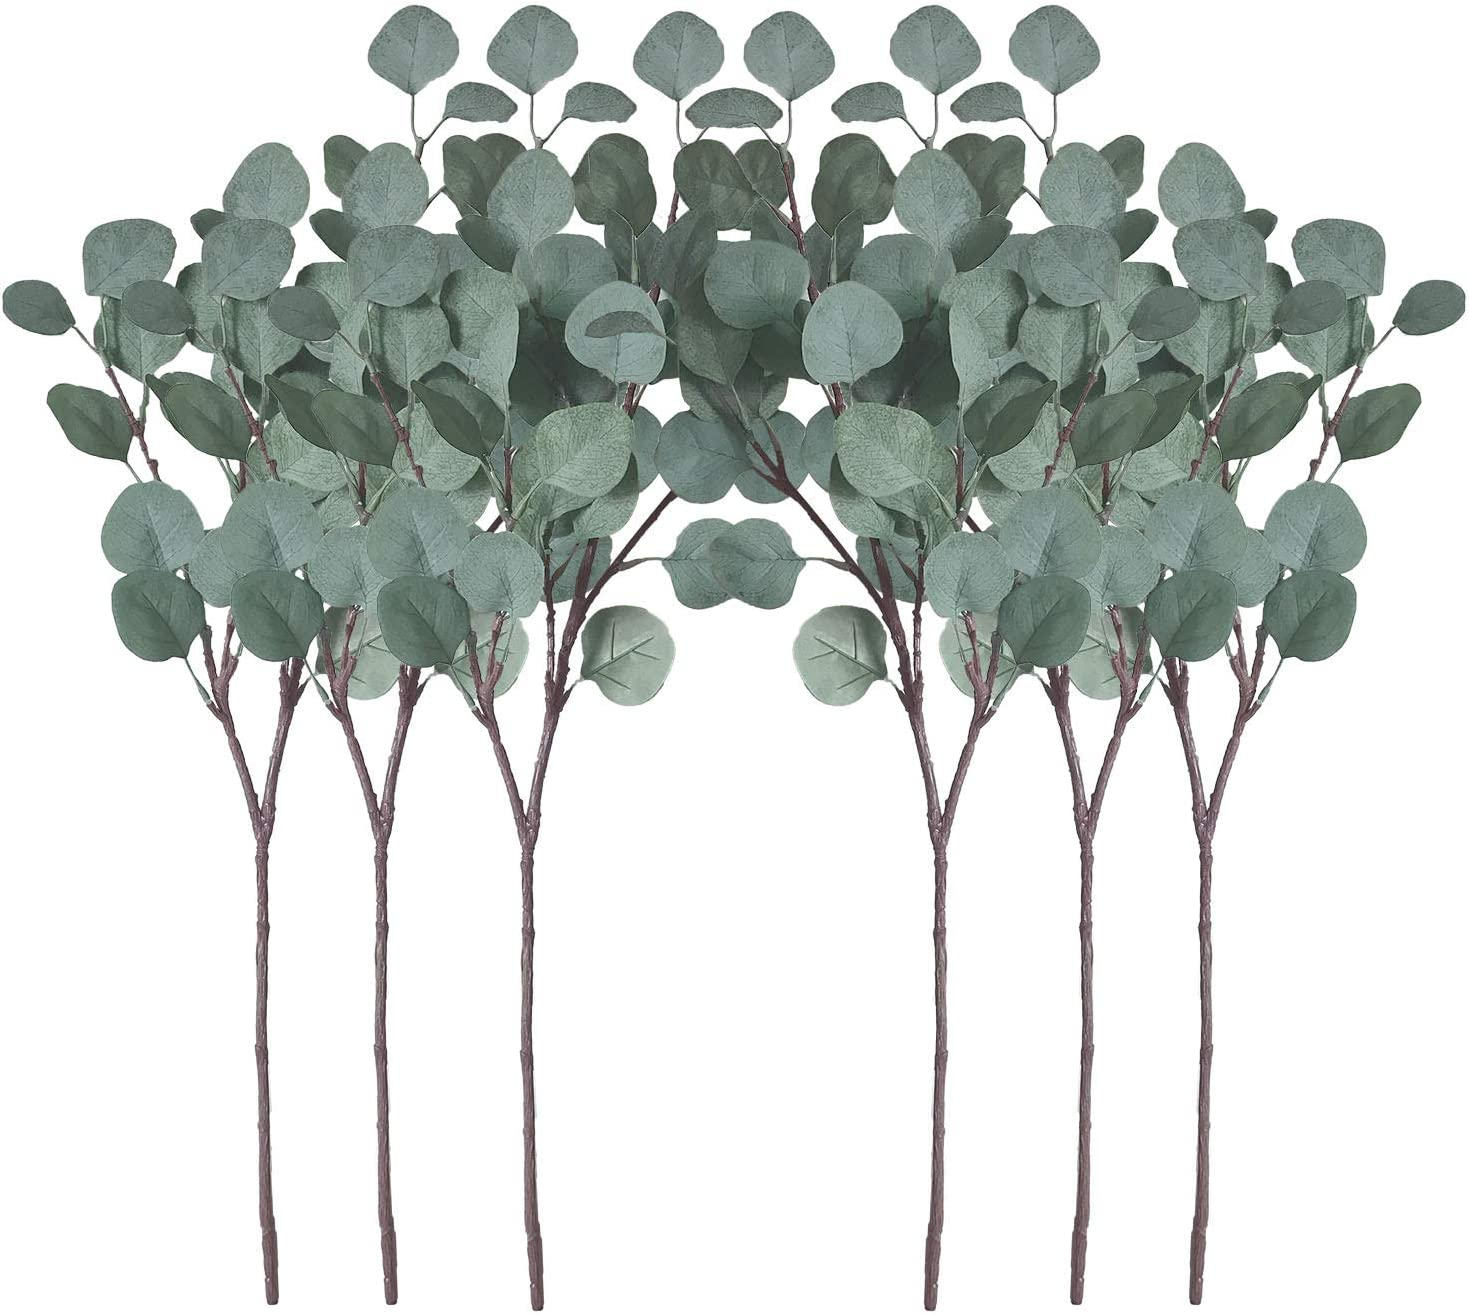 ZHIIHA Pack of 6 Artificial Silver Dollar Eucalyptus Leaves Artificial Greenery Faux Holiday Christmas Greens Flower Leaf Arrangement for Home Décor